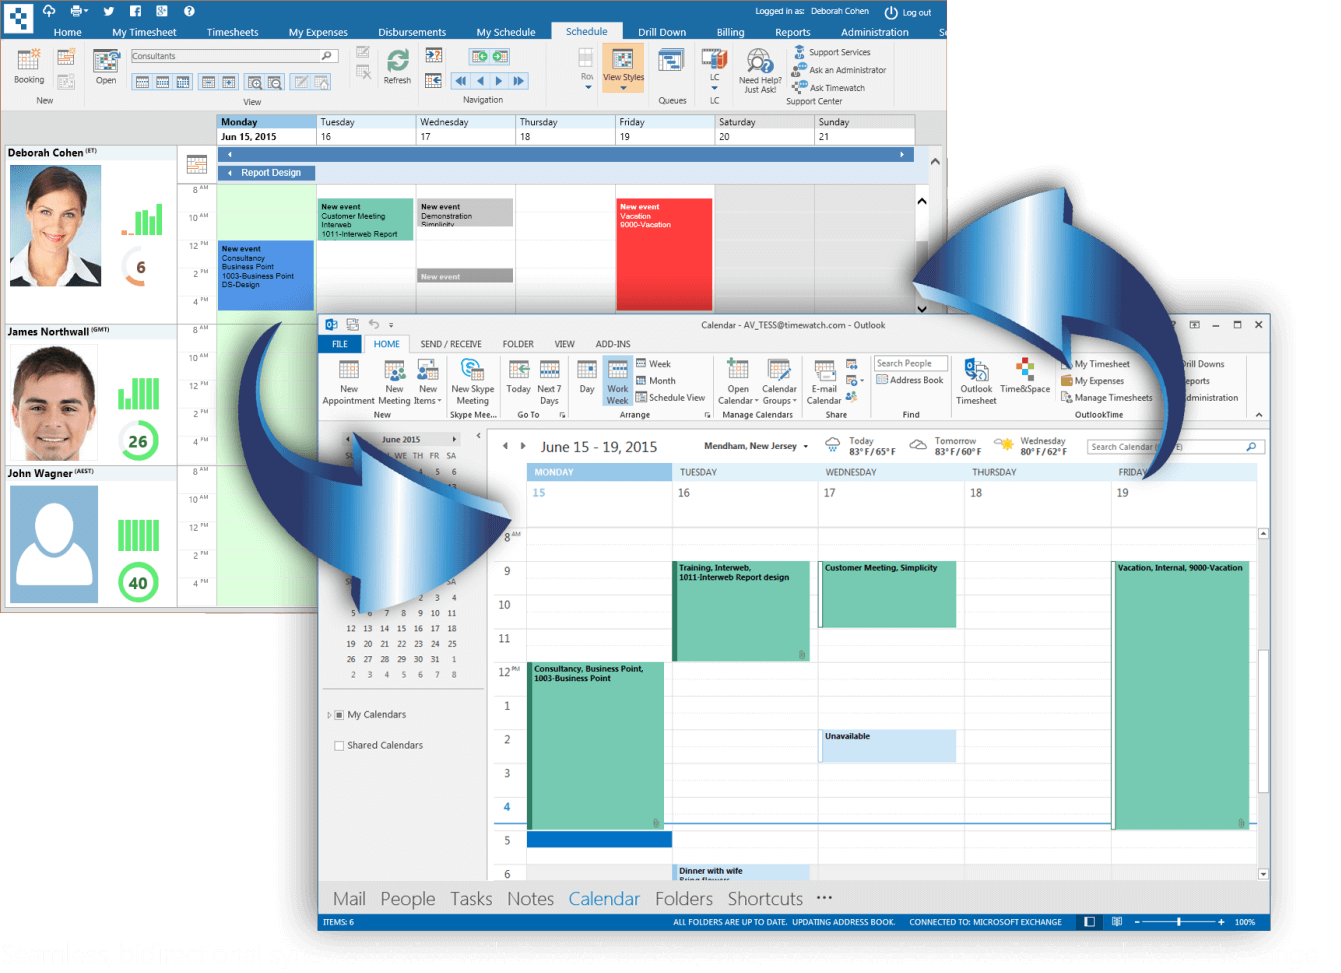 Outlook and Google sync